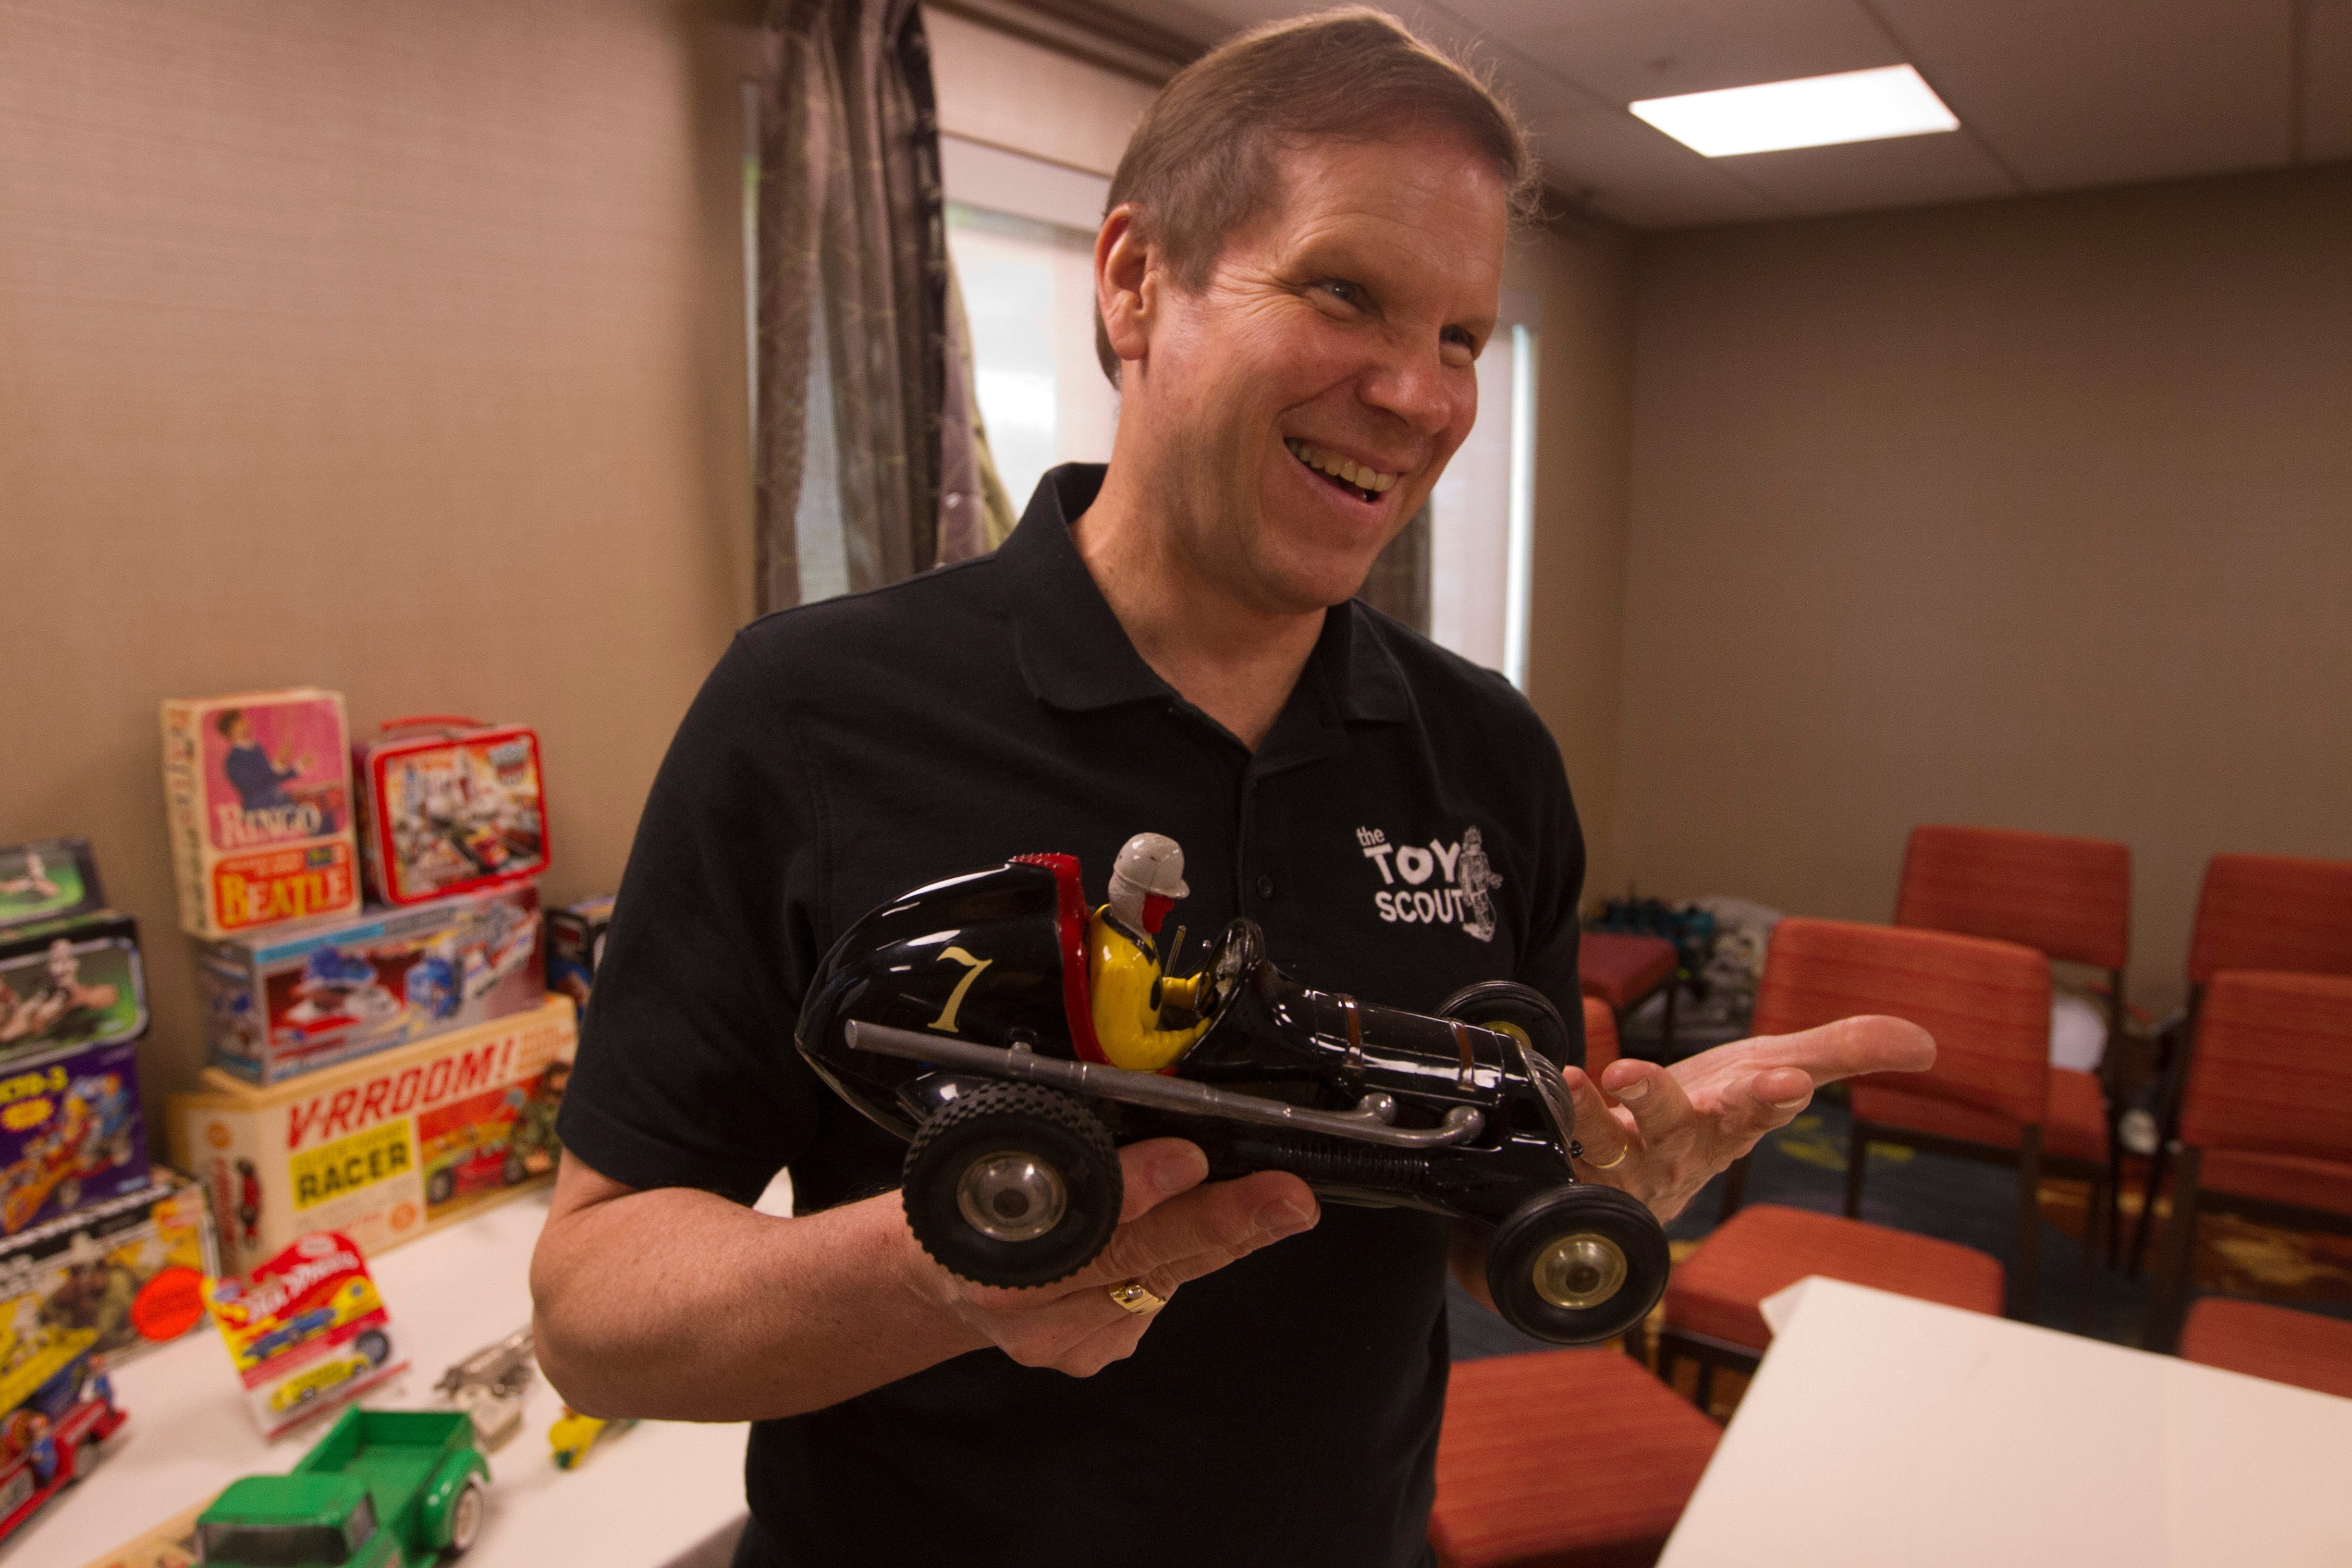 Toy collector and dealer Jerry Magee looks at a Cox Thimble Drome Racer toy from the 1940s at the Courtyard by Marriott in Amherst on Thursday. Magee will be appraising and buying decades-old playthings through the weekend. Other toys brought to him are at right.